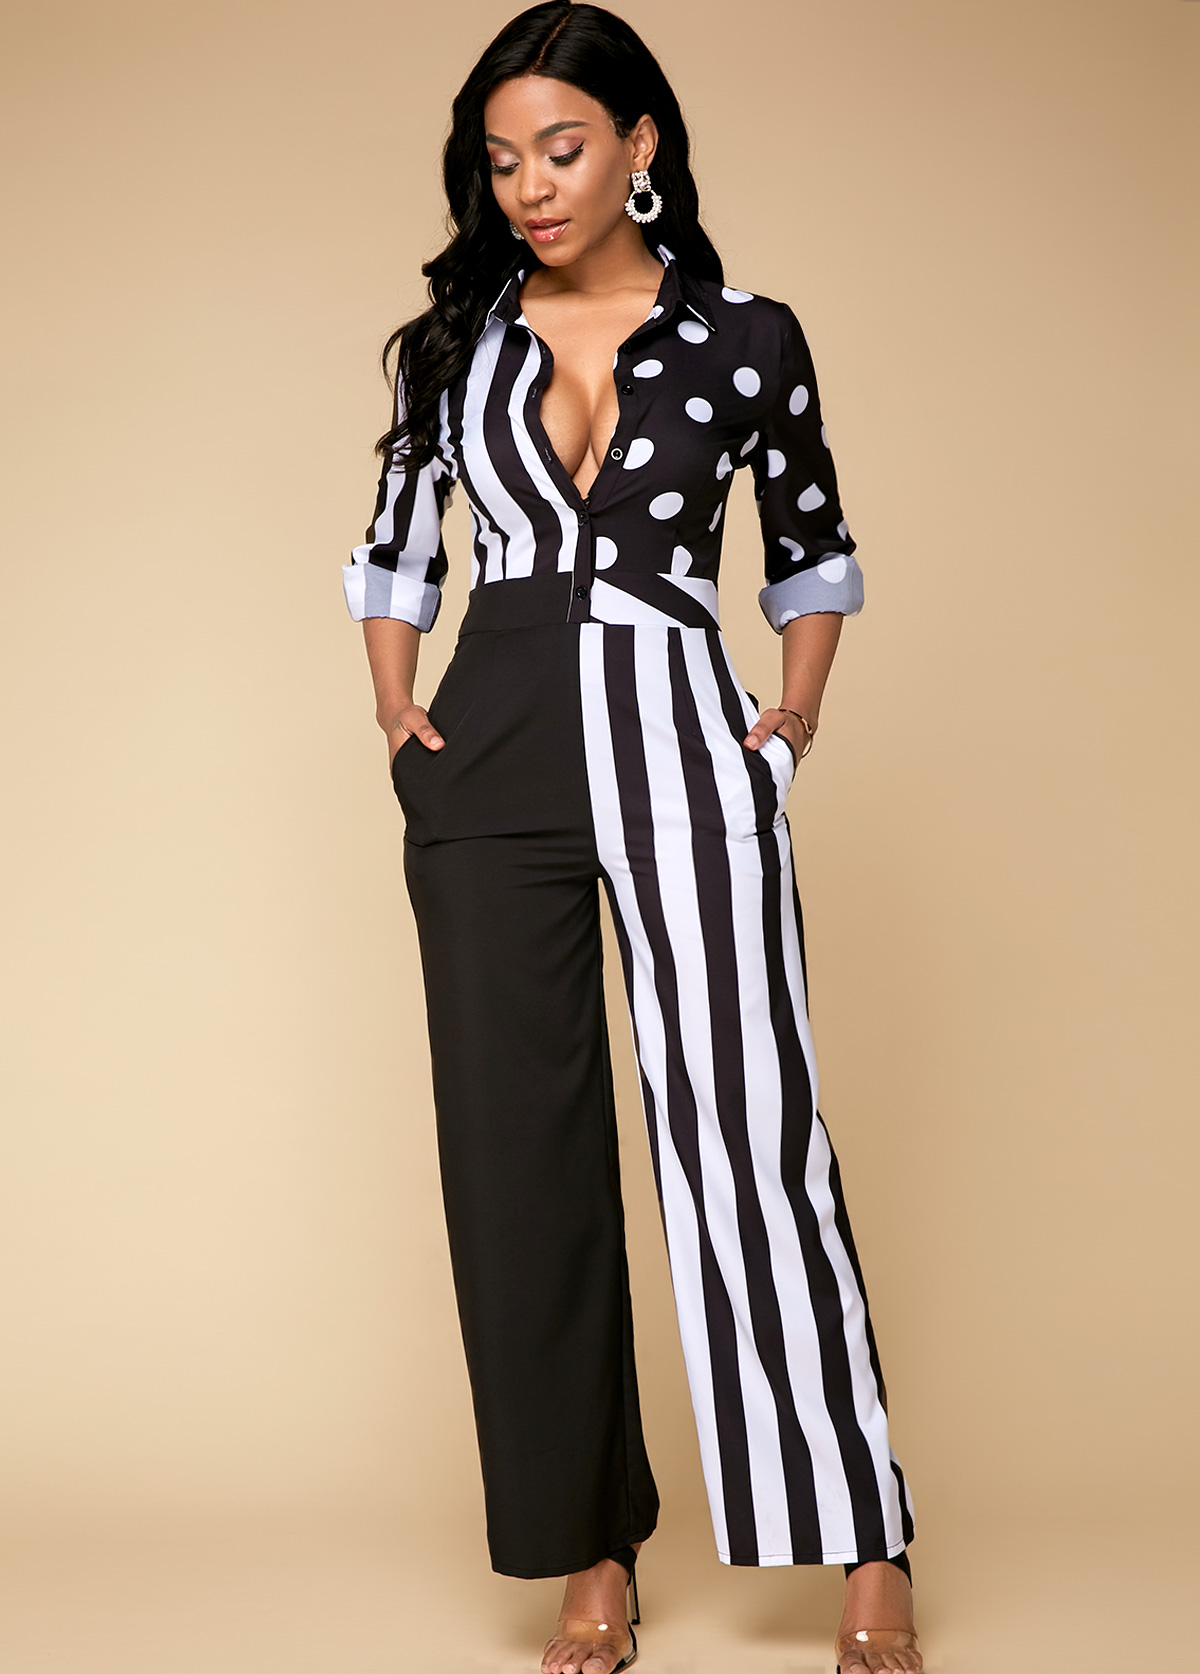 ROTITA Long Sleeve Patchwork Design Striped Jumpsuits